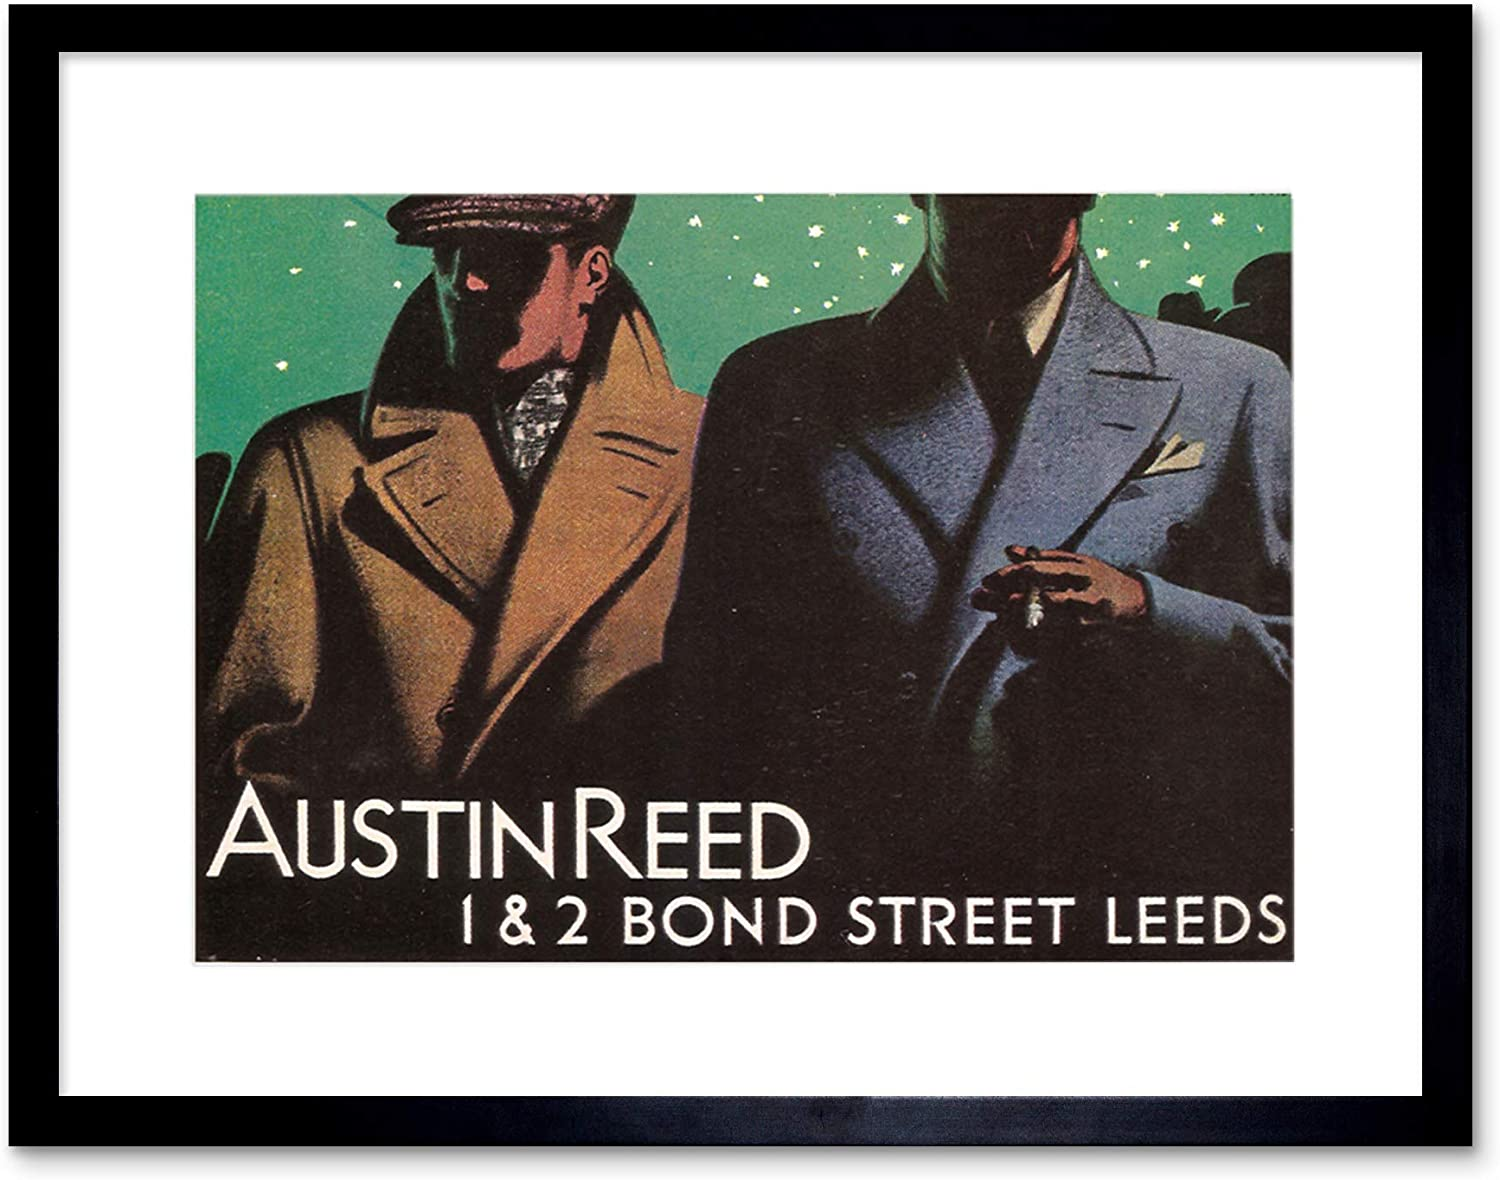 Amazon Com Advertisement Austin Reed Bond Street Leeds Yorkshire Framed Art Print B12x6125 Furniture Decor